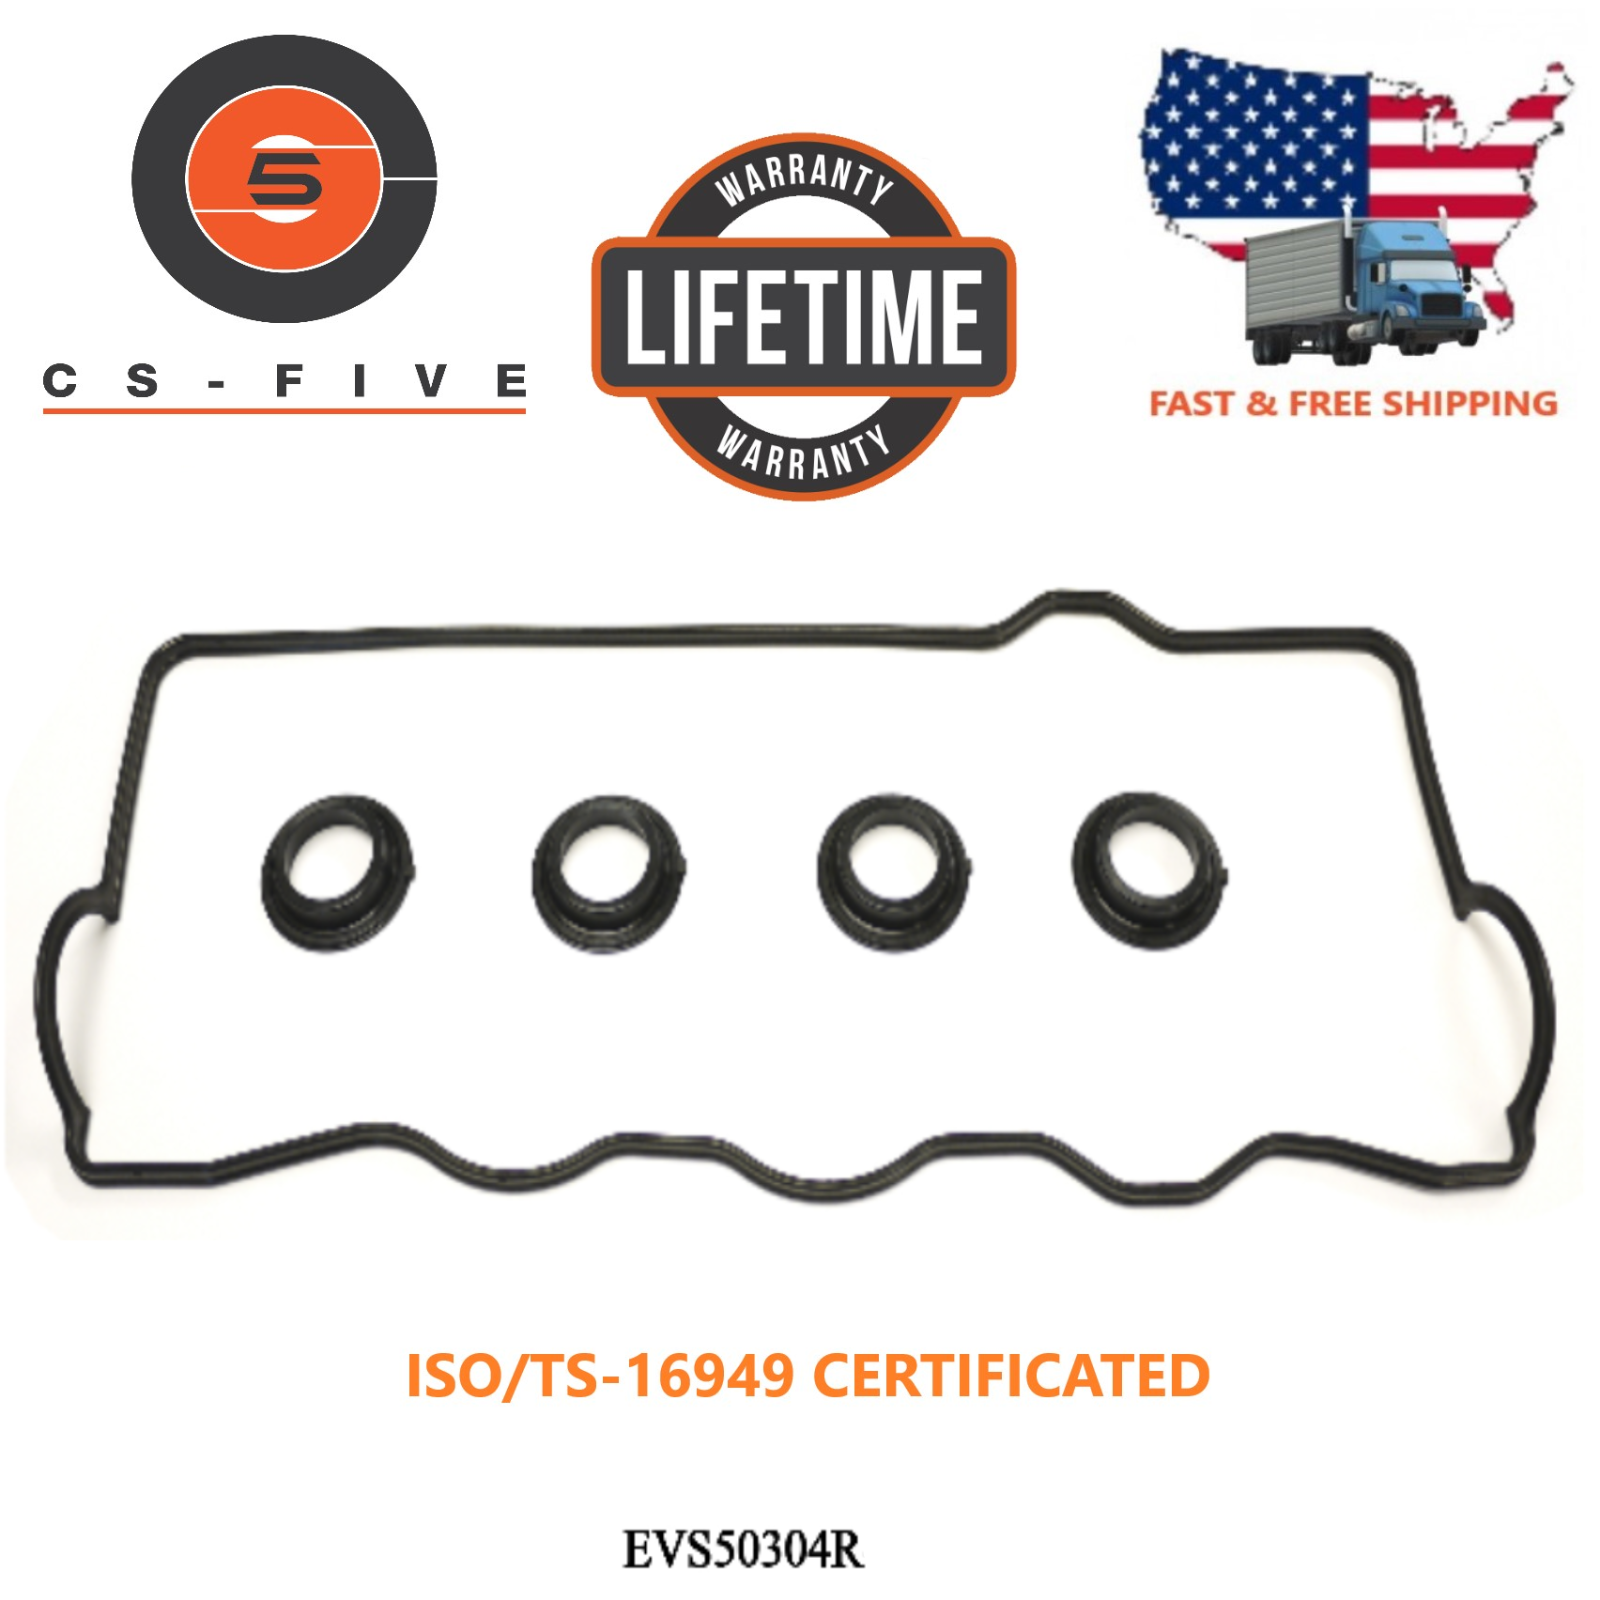 LIFETIME Engine Valve Cover Gasket Fit TOYOTA CAMRY 92 93 94 95 96 97 98 99 2000 2002-16329